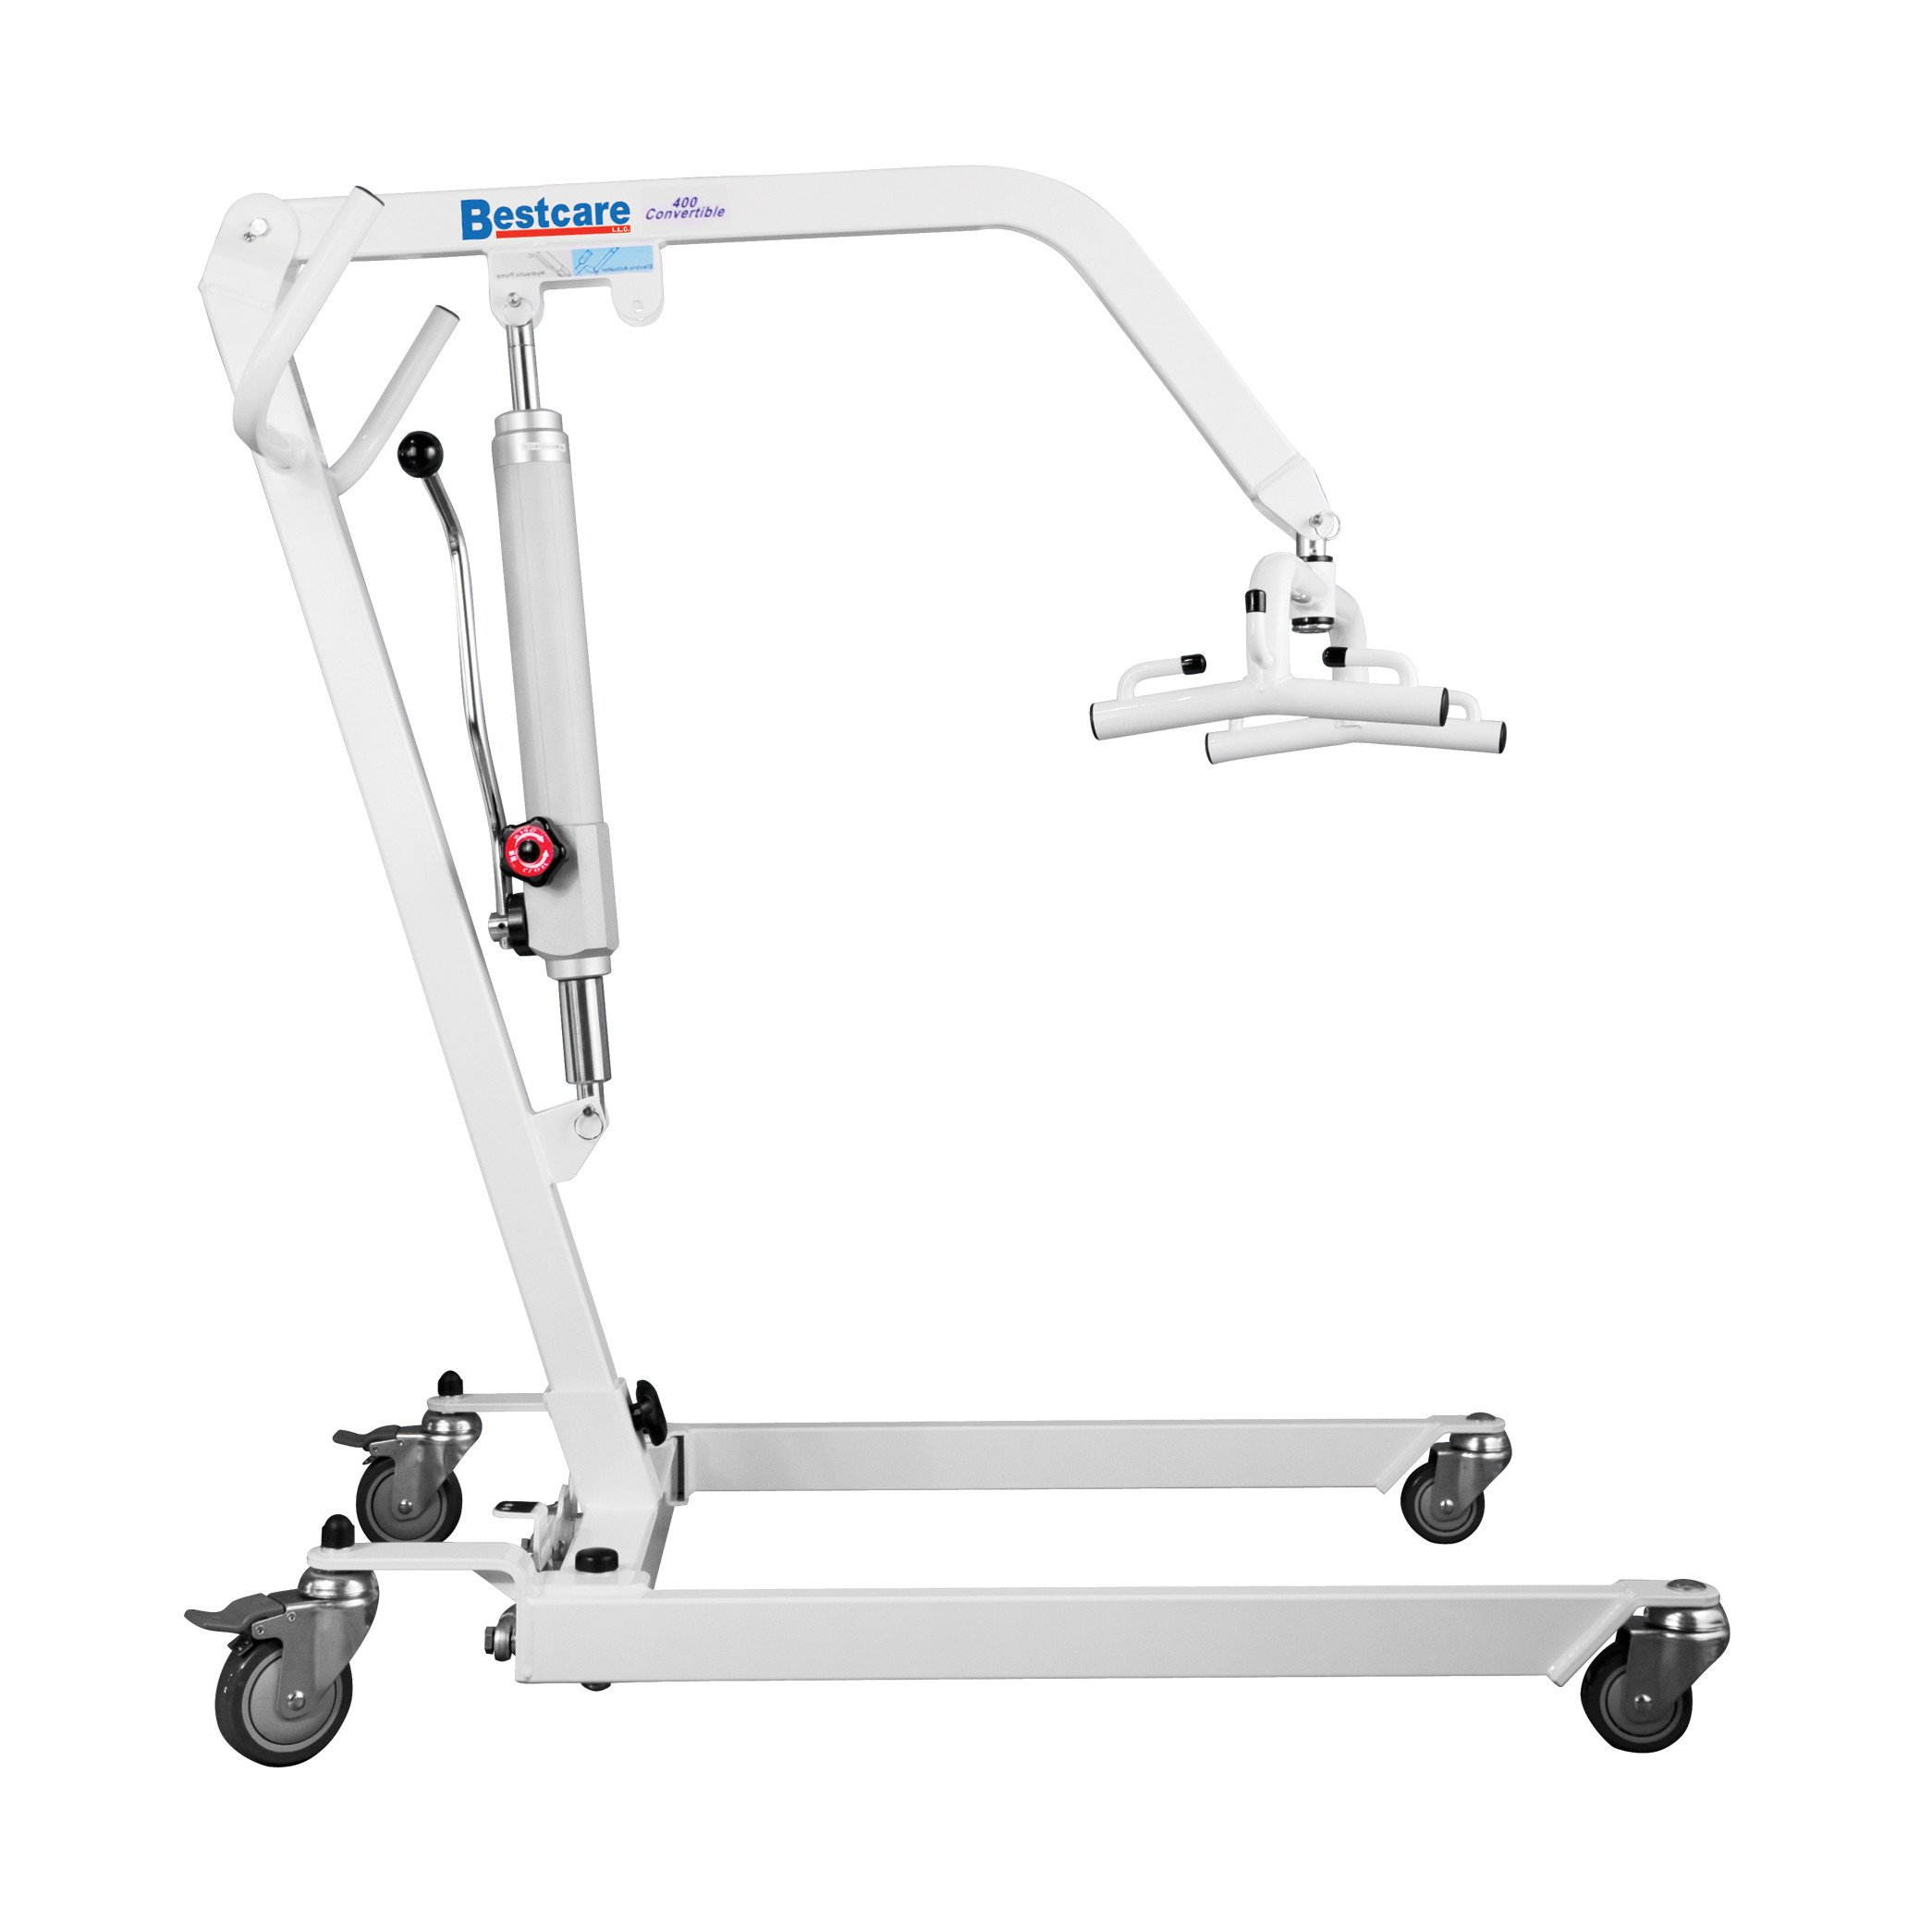 Manual Hydraulic Lift : Bestcare bestlift genesis hydraulic